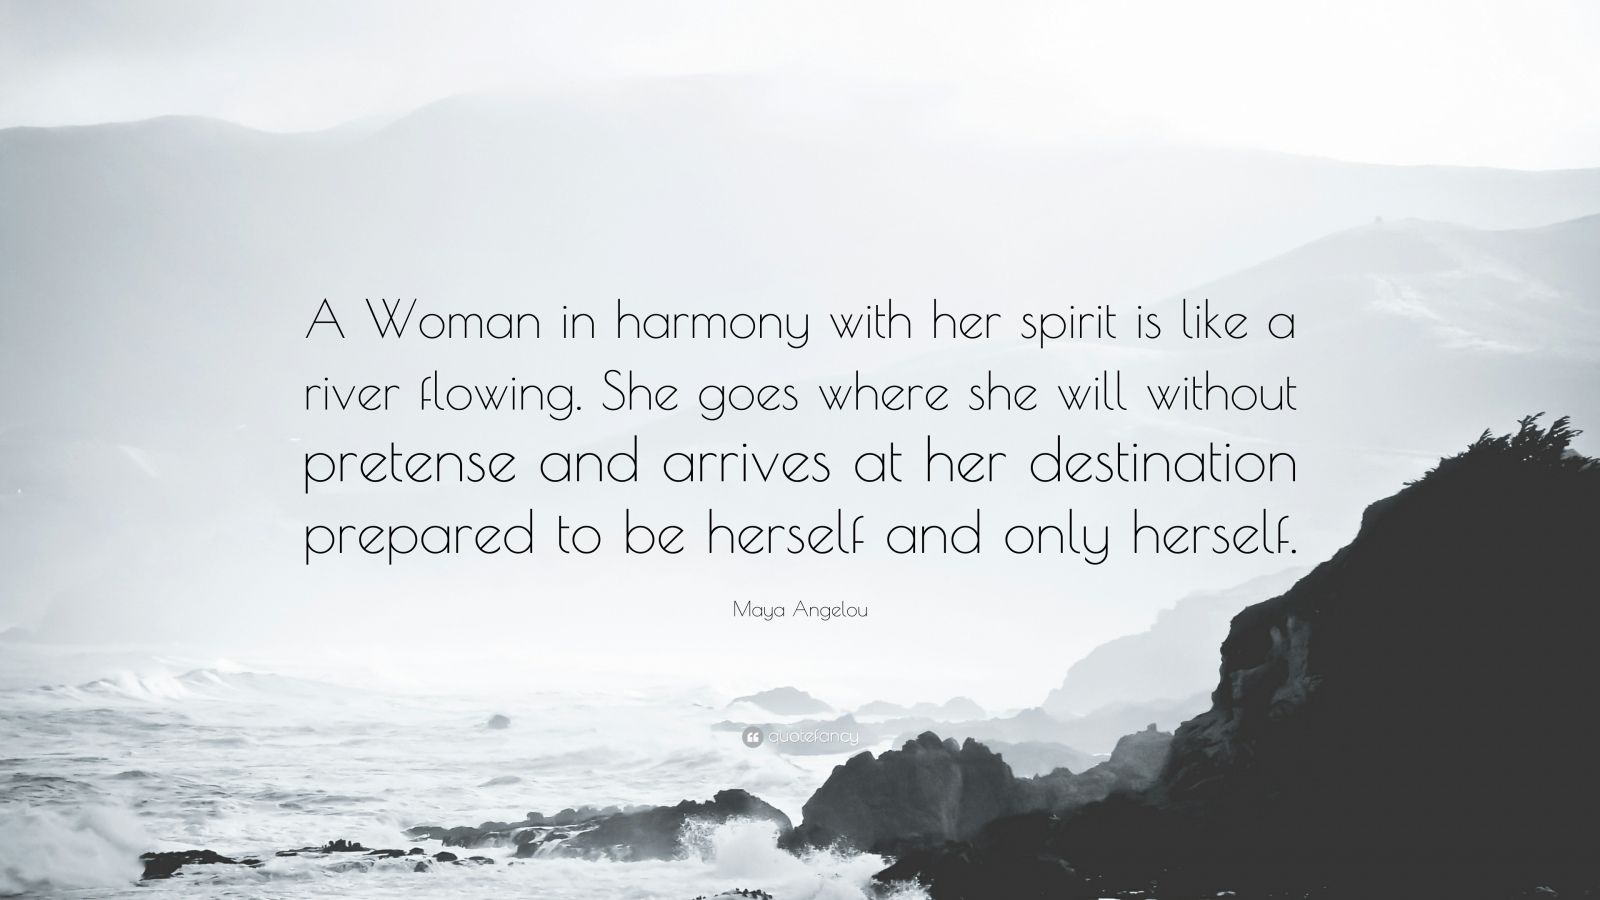 """Maya Angelou Quote: """"A Woman in harmony with her spirit is like a river flowing. She goes where she will without pretense and arrives at her destination prepared to be herself and only herself."""""""